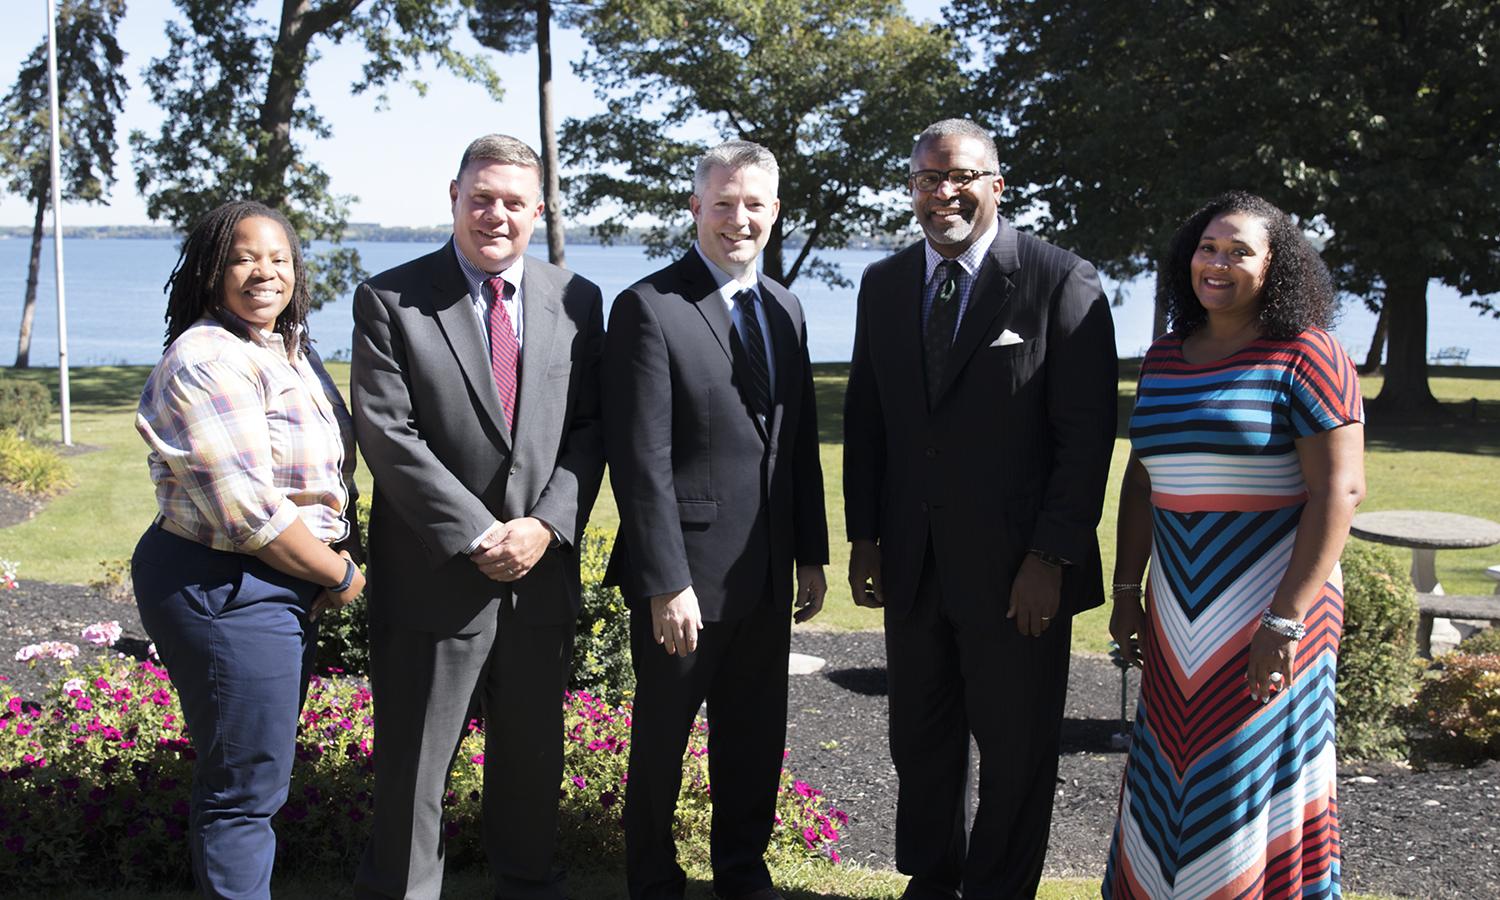 Associate Dean of Students and Posse Mentor Stacey Pierce, Vice President for Student Affairs Robb Flowers, Chief Operating Officer for Posse National Matt Fasciano, President Gregory J. Vincent '83 and Posse Los Angeles Director Tamara Craver gather for a photo after a meeting at Belhurst Castle.